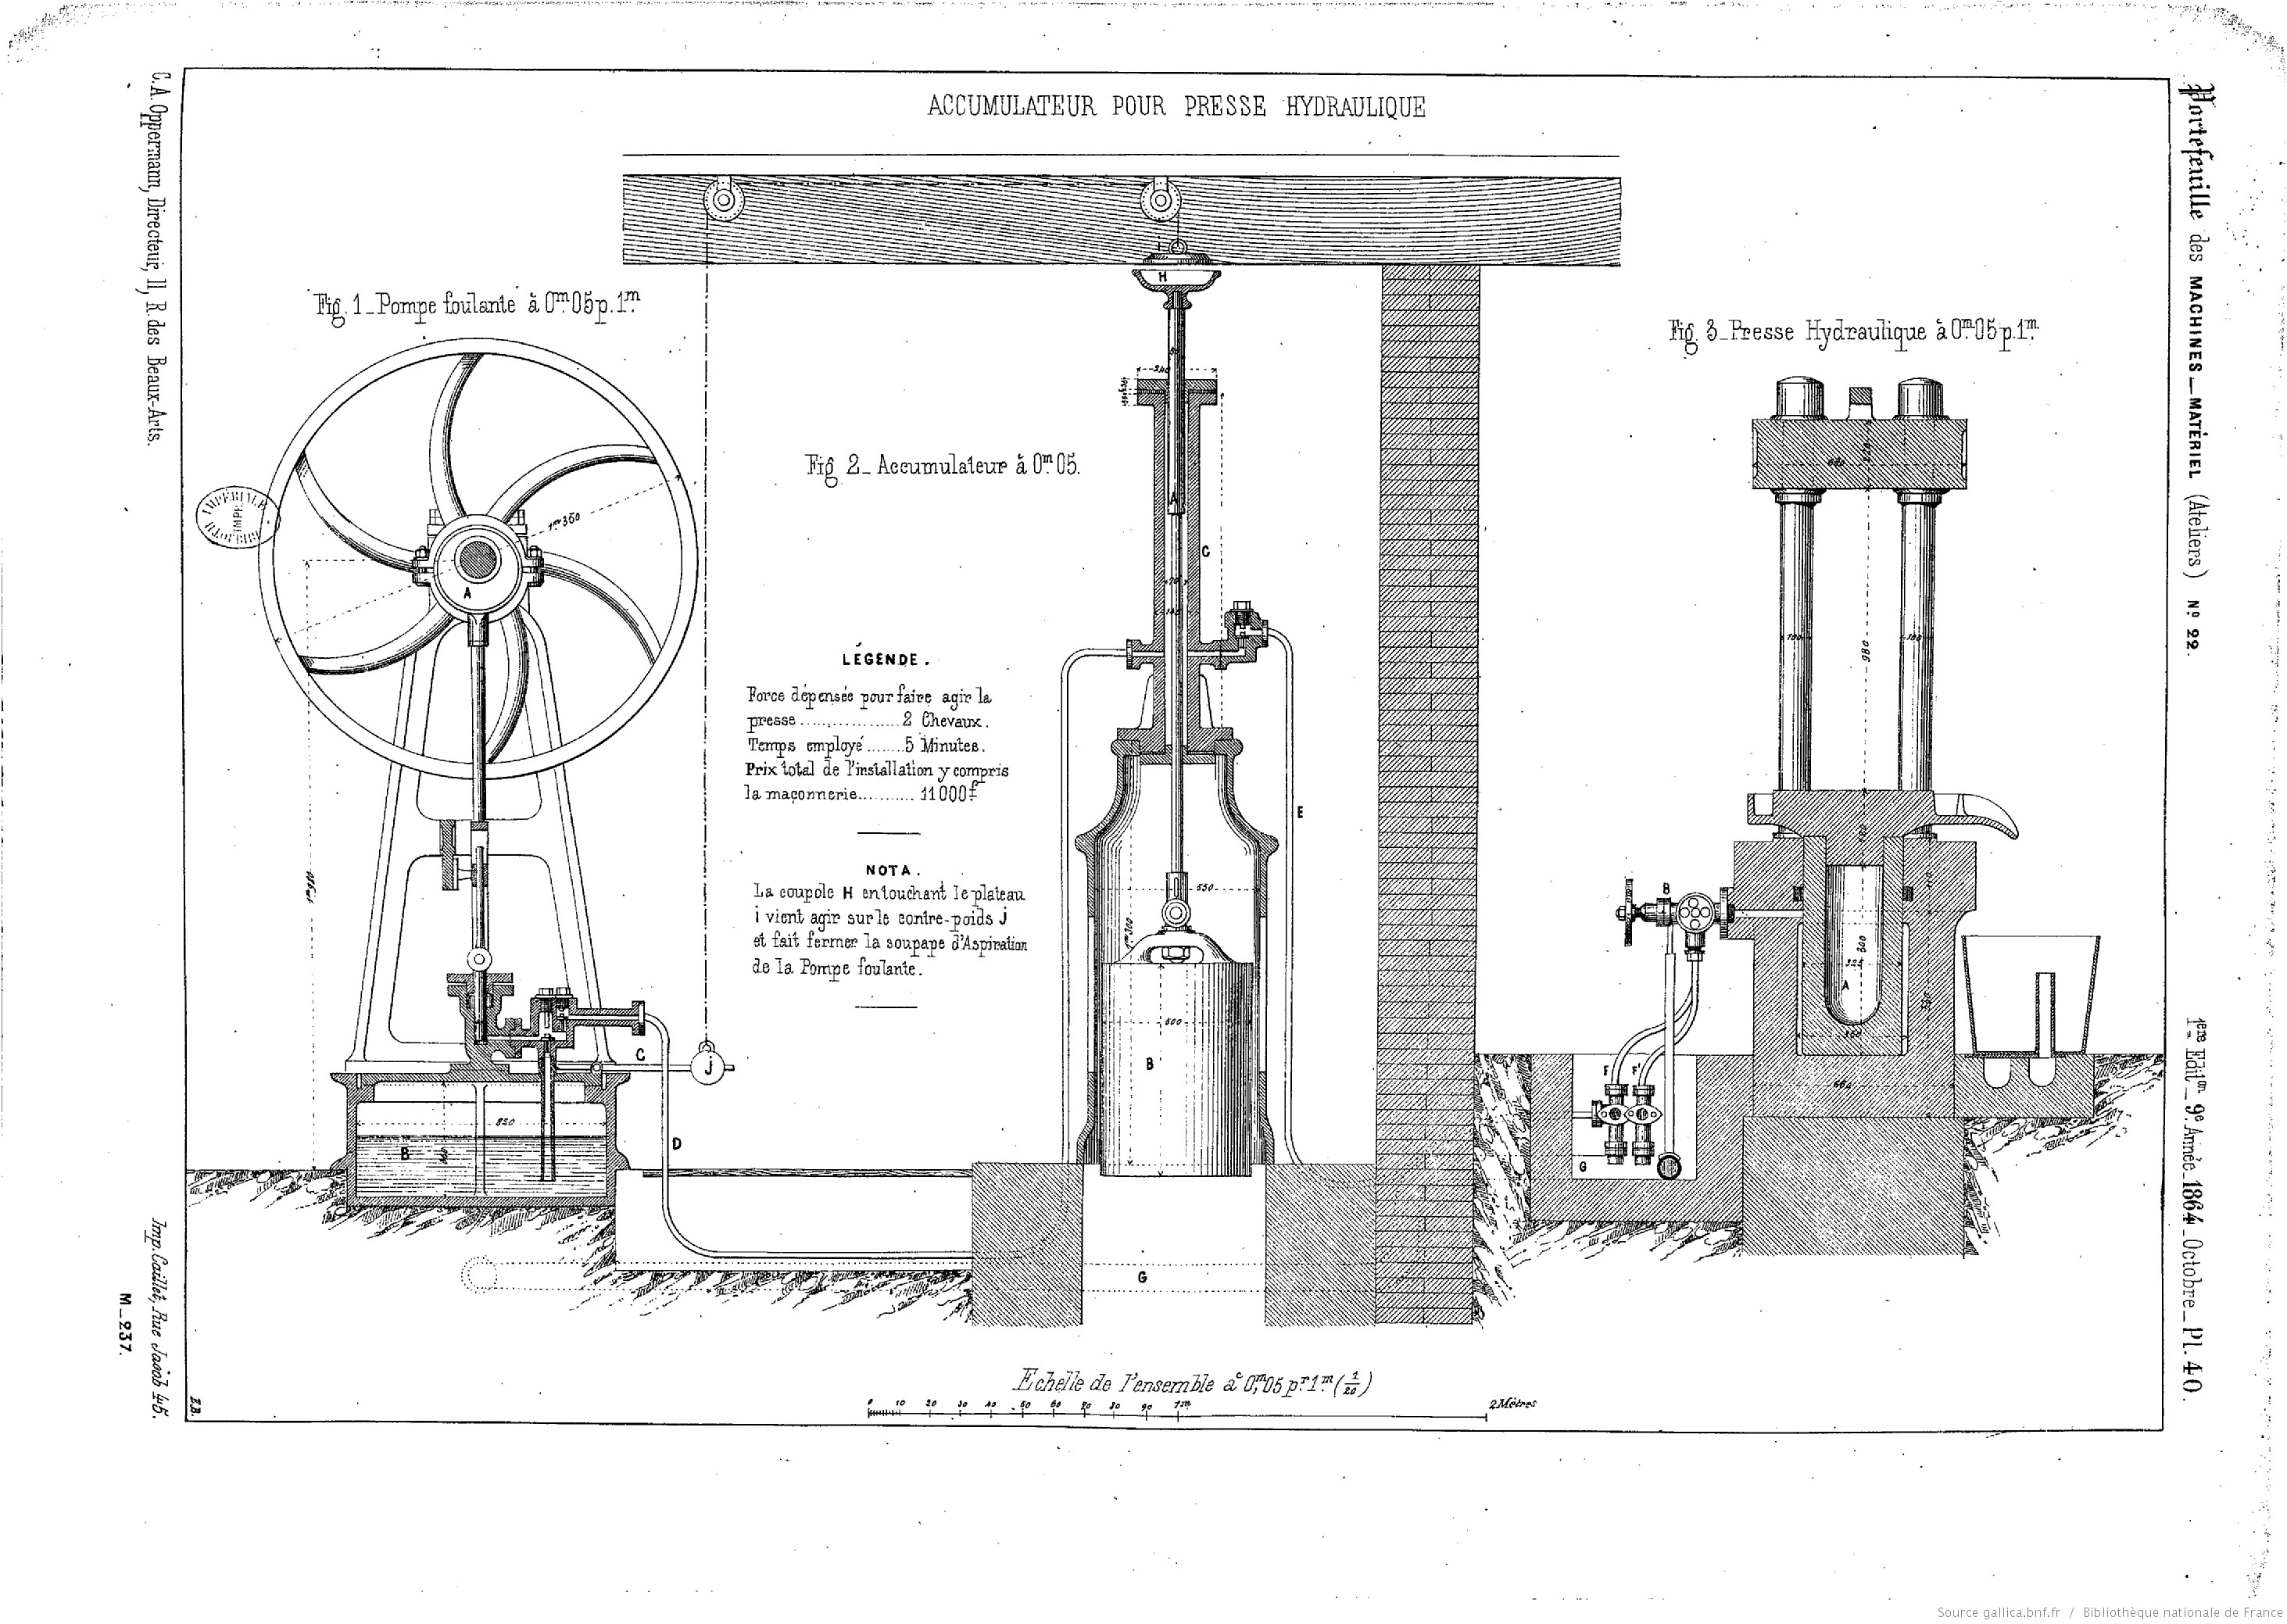 Old hydrolic system photo